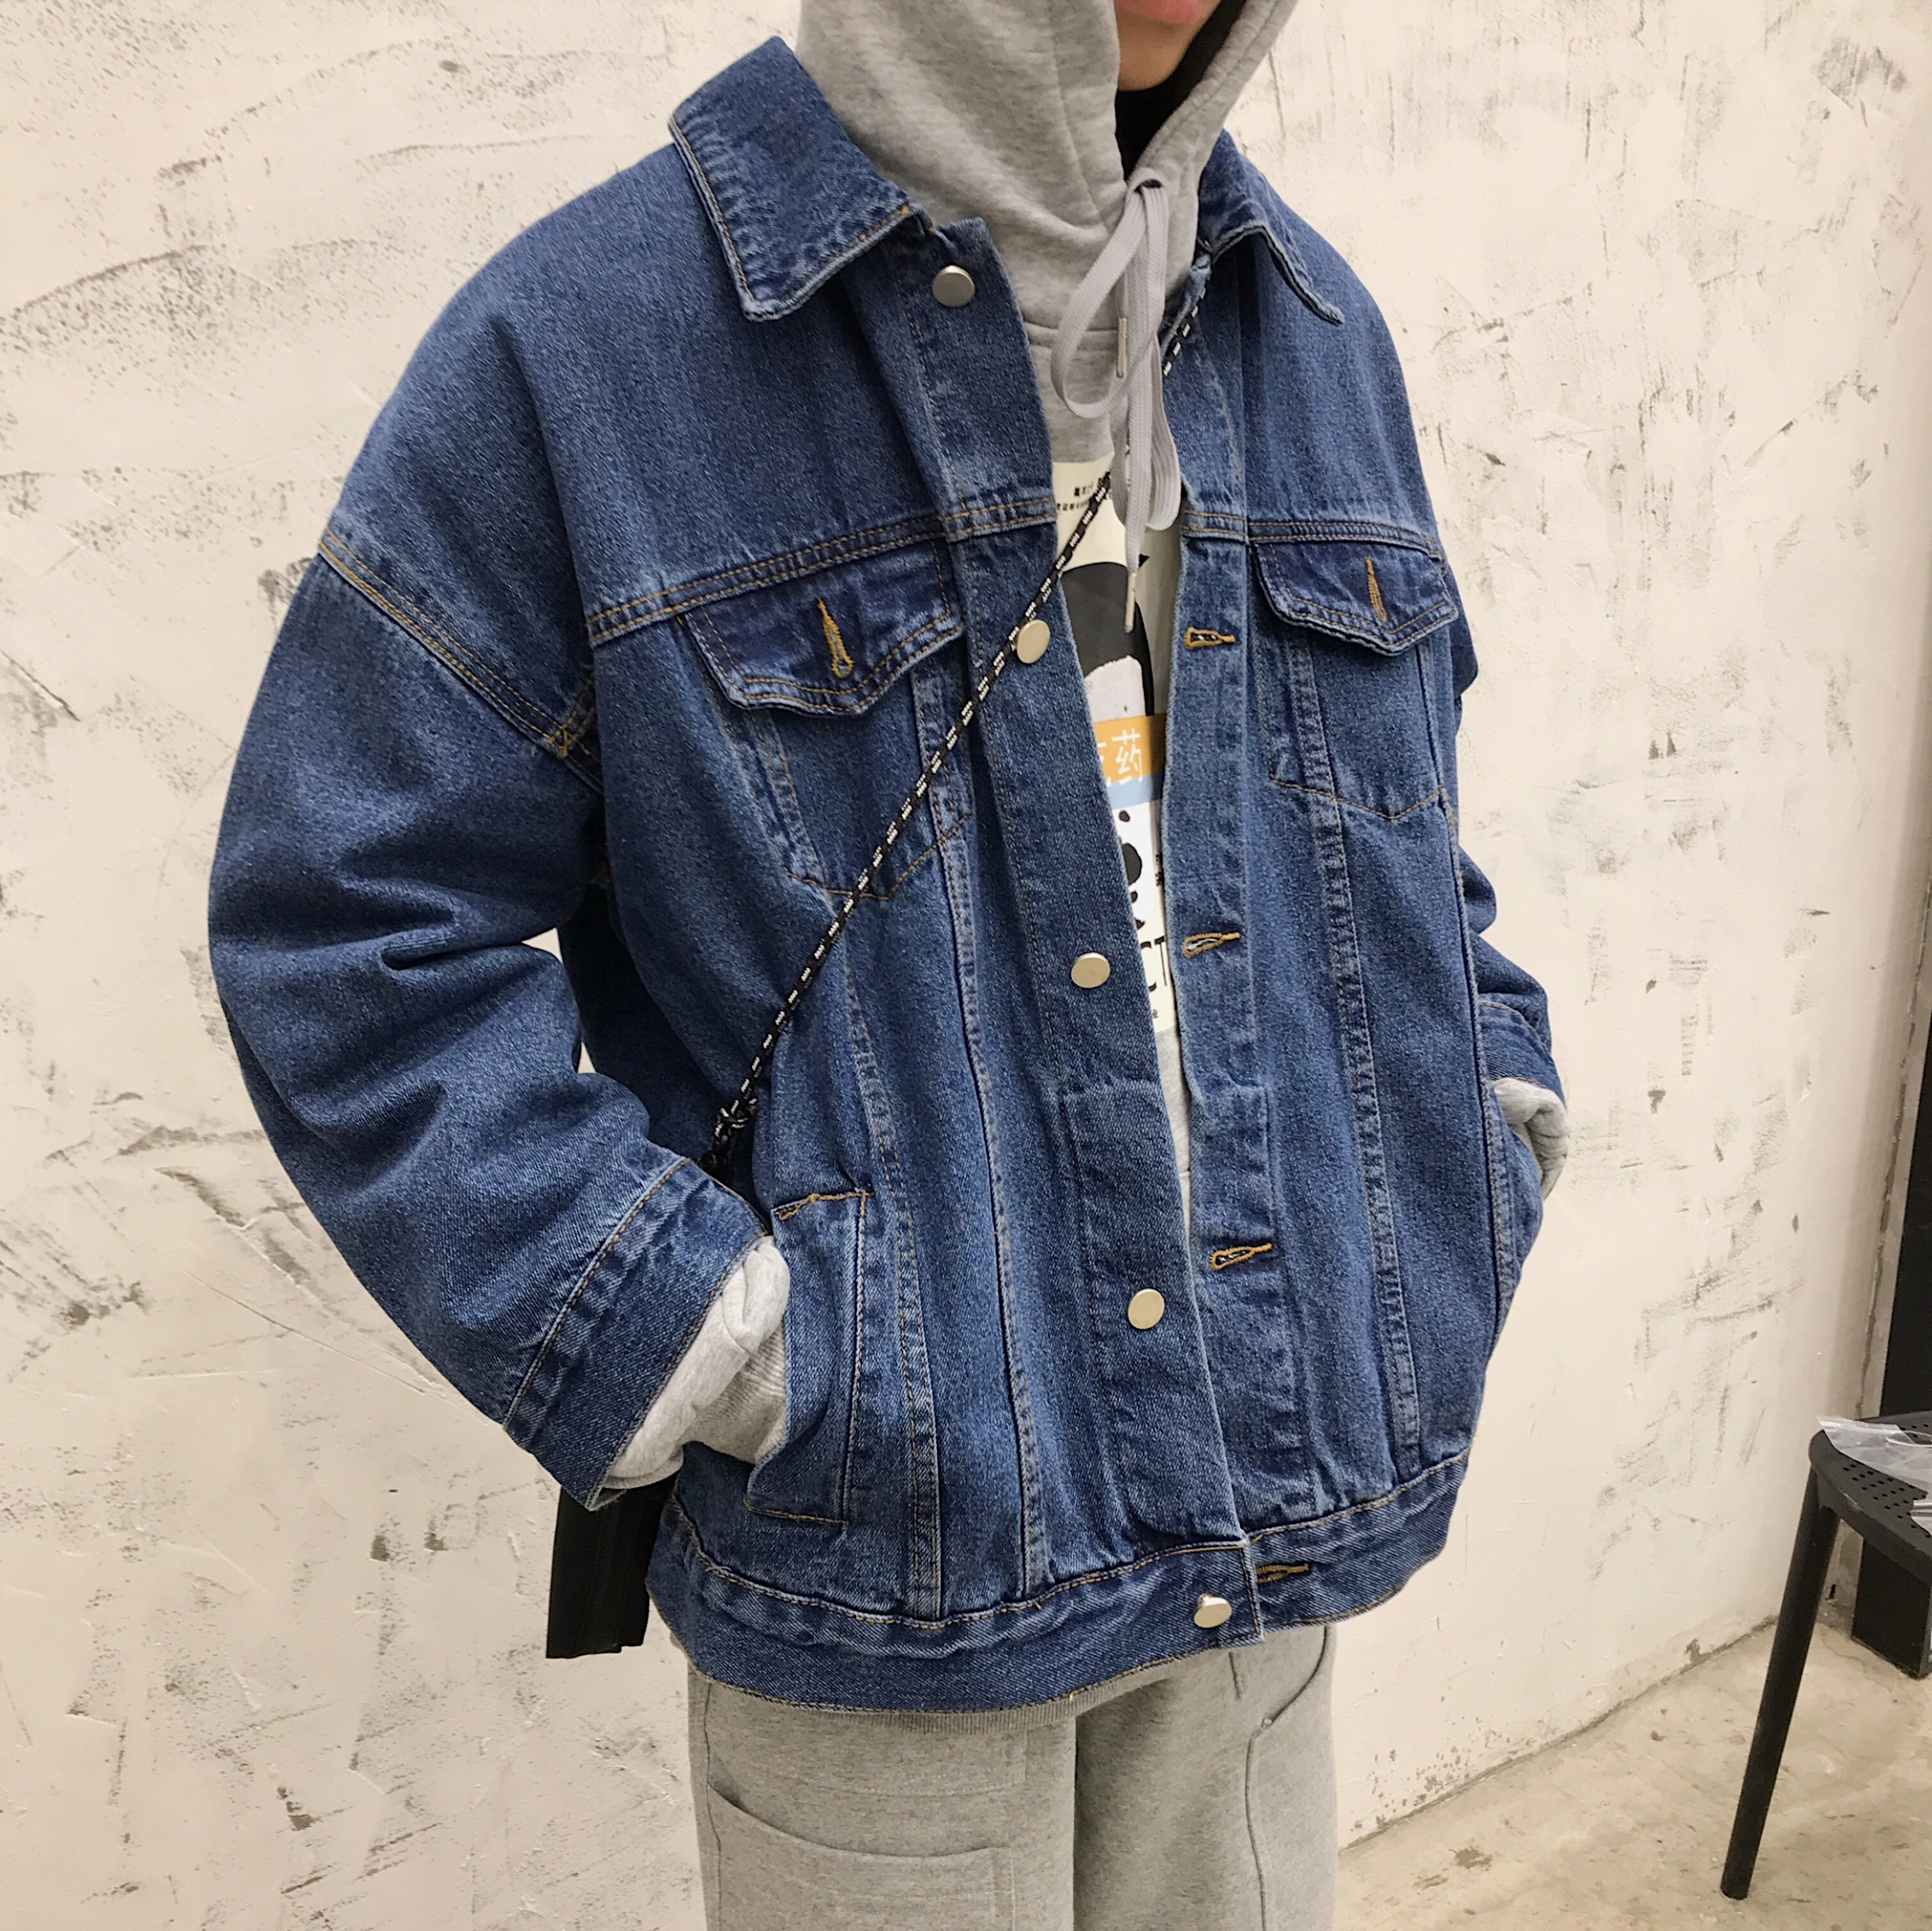 2019 Spring Personality Button Back Men Casual Cotton Youth Denim Jacket Streetwear Japanese Trend Loose Blue Cowboy Coat M 2XL in Jackets from Men 39 s Clothing